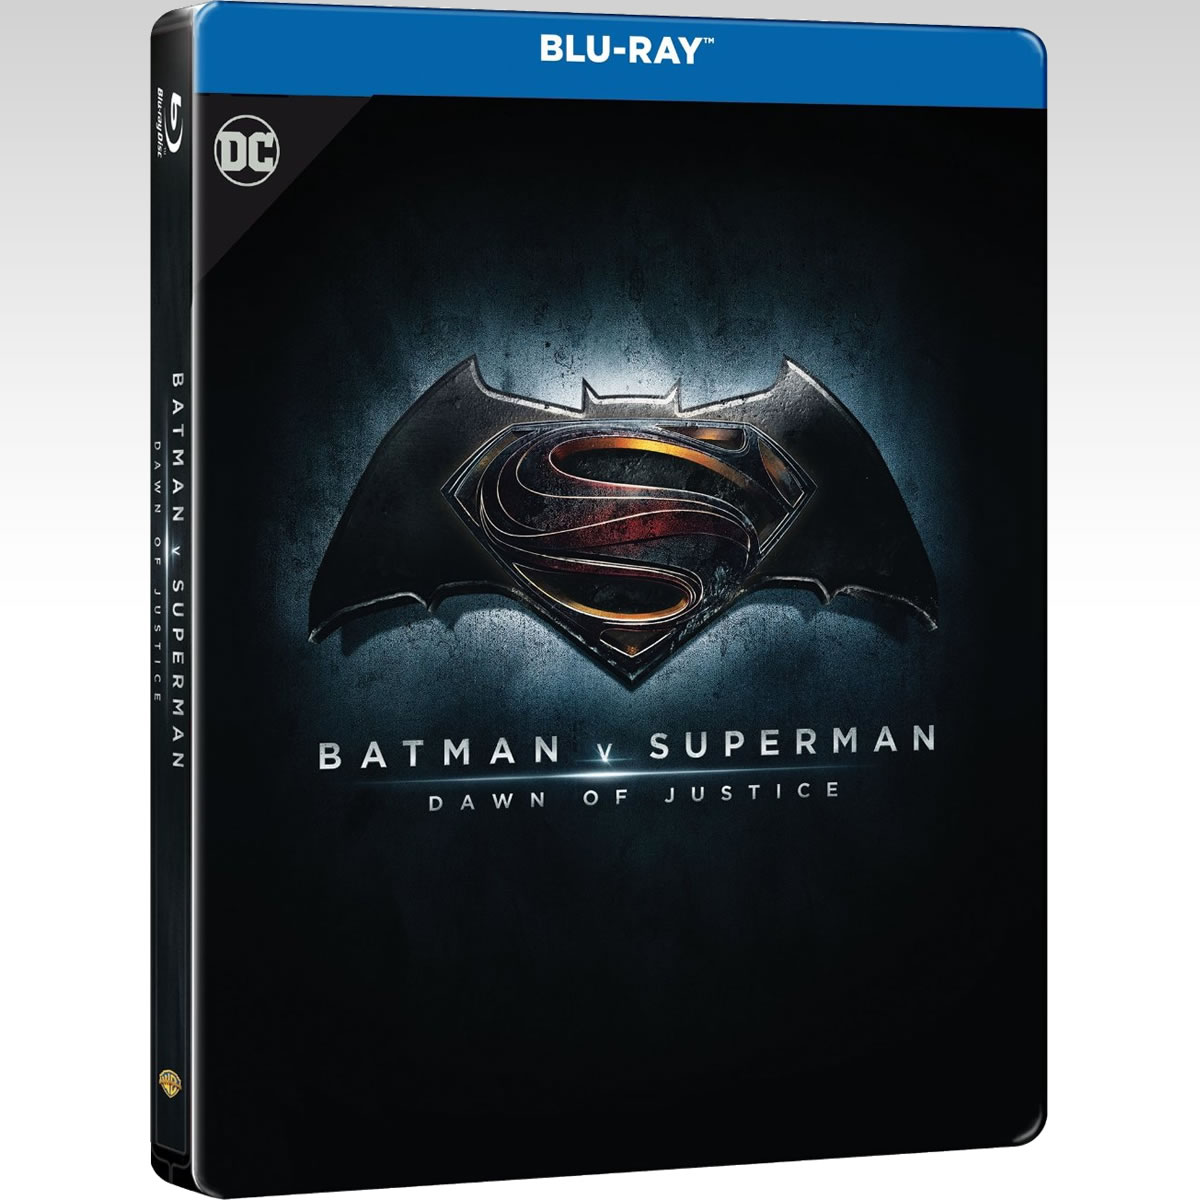 BATMAN V SUPERMAN: DAWN OF JUSTICE Extended Unrated Cut ULTIMATE EDITION Steelbook - BATMAN V SUPERMAN: Η ΑΥΓΗ ΤΗΣ ΔΙΚΑΙΟΣΥΝΗΣ Extended Unrated Cut ULTIMATE EDITION Steelbook [Εισαγωγής ΜΕ ΕΛΛΗΝΙΚΟΥΣ ΥΠΟΤΙΤΛΟΥΣ] (2 BLU-RAYs)